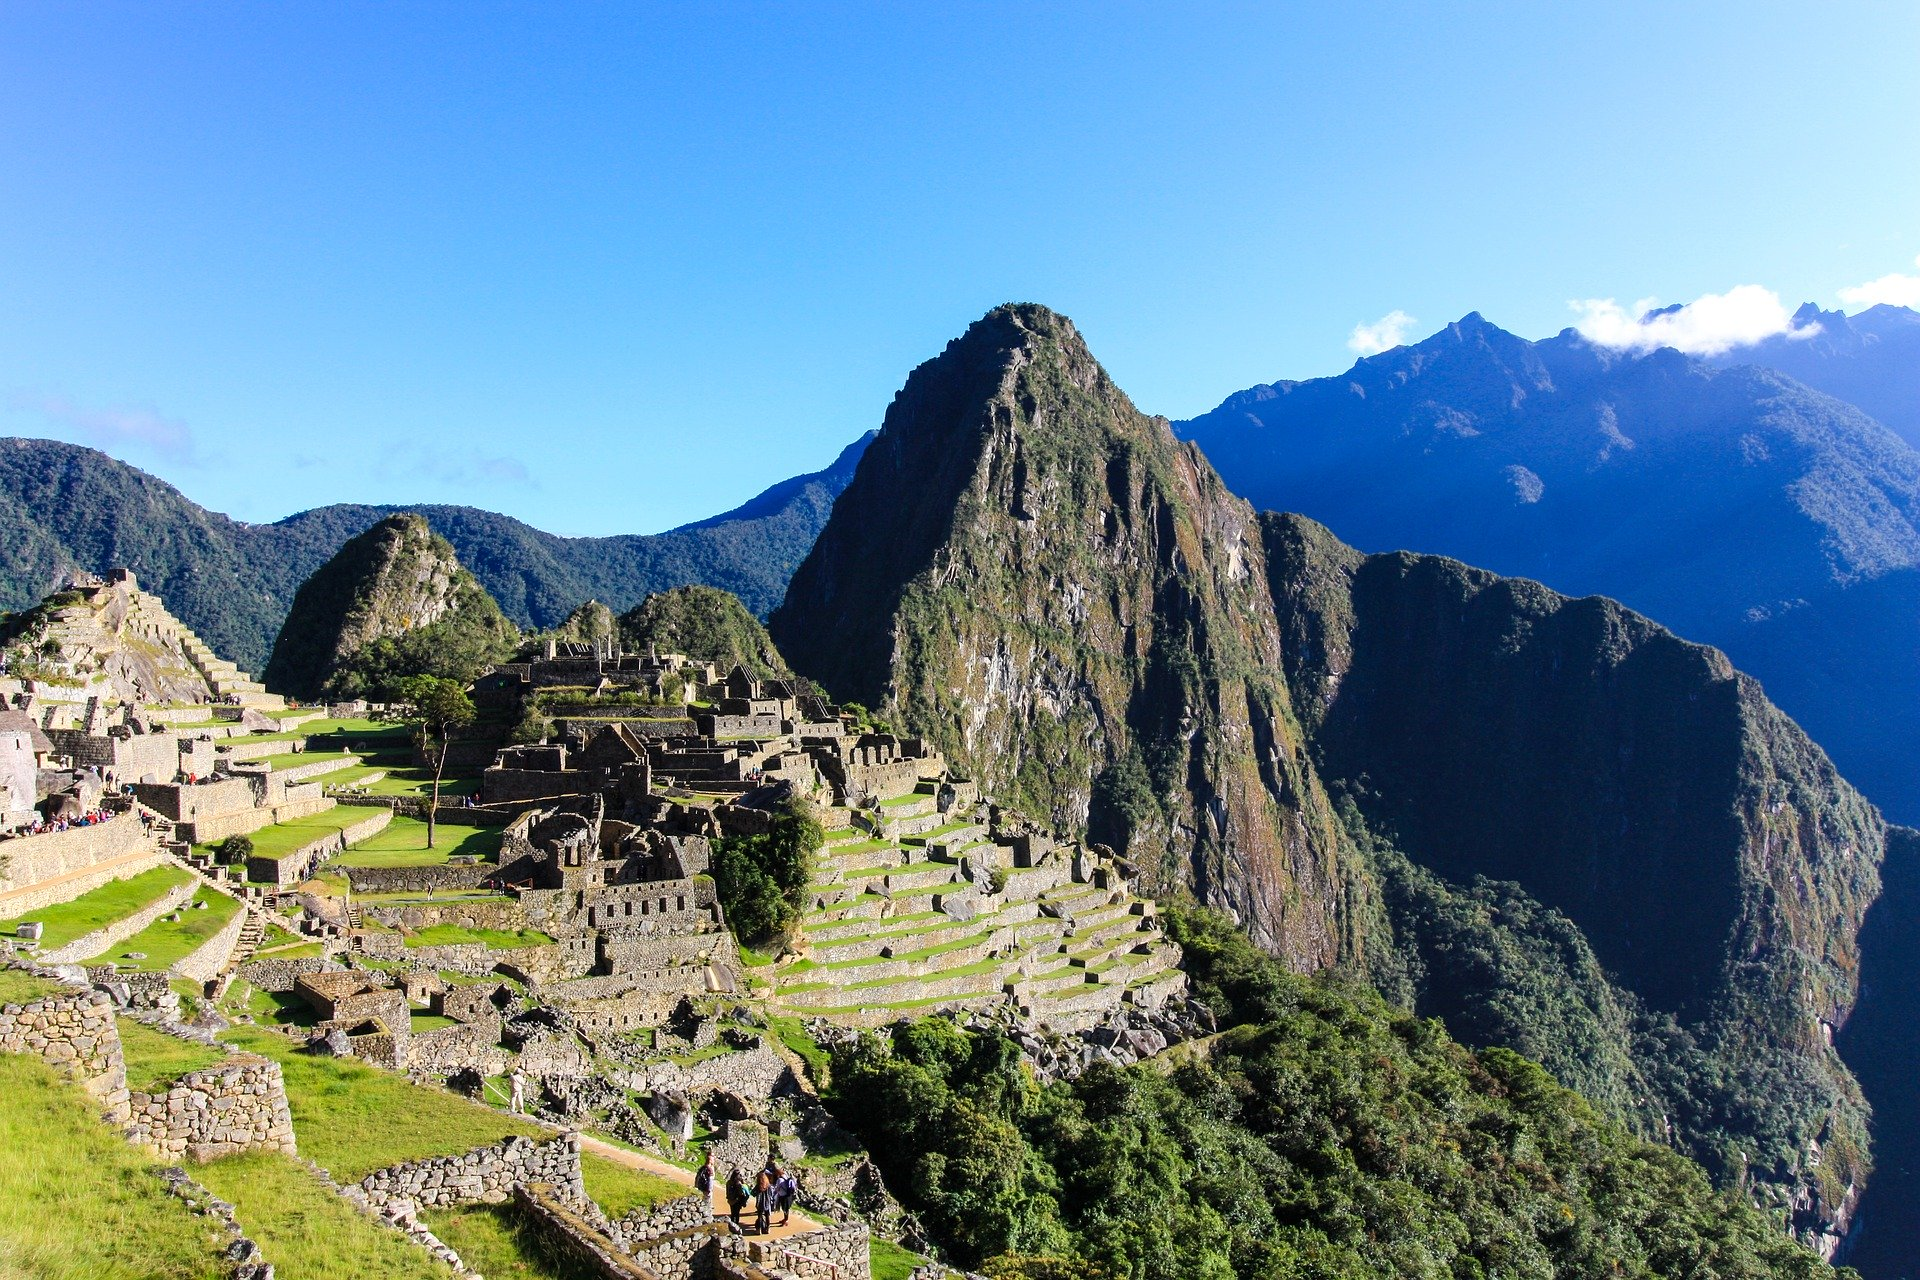 Ultimate South America | Machu Picchu, Peru